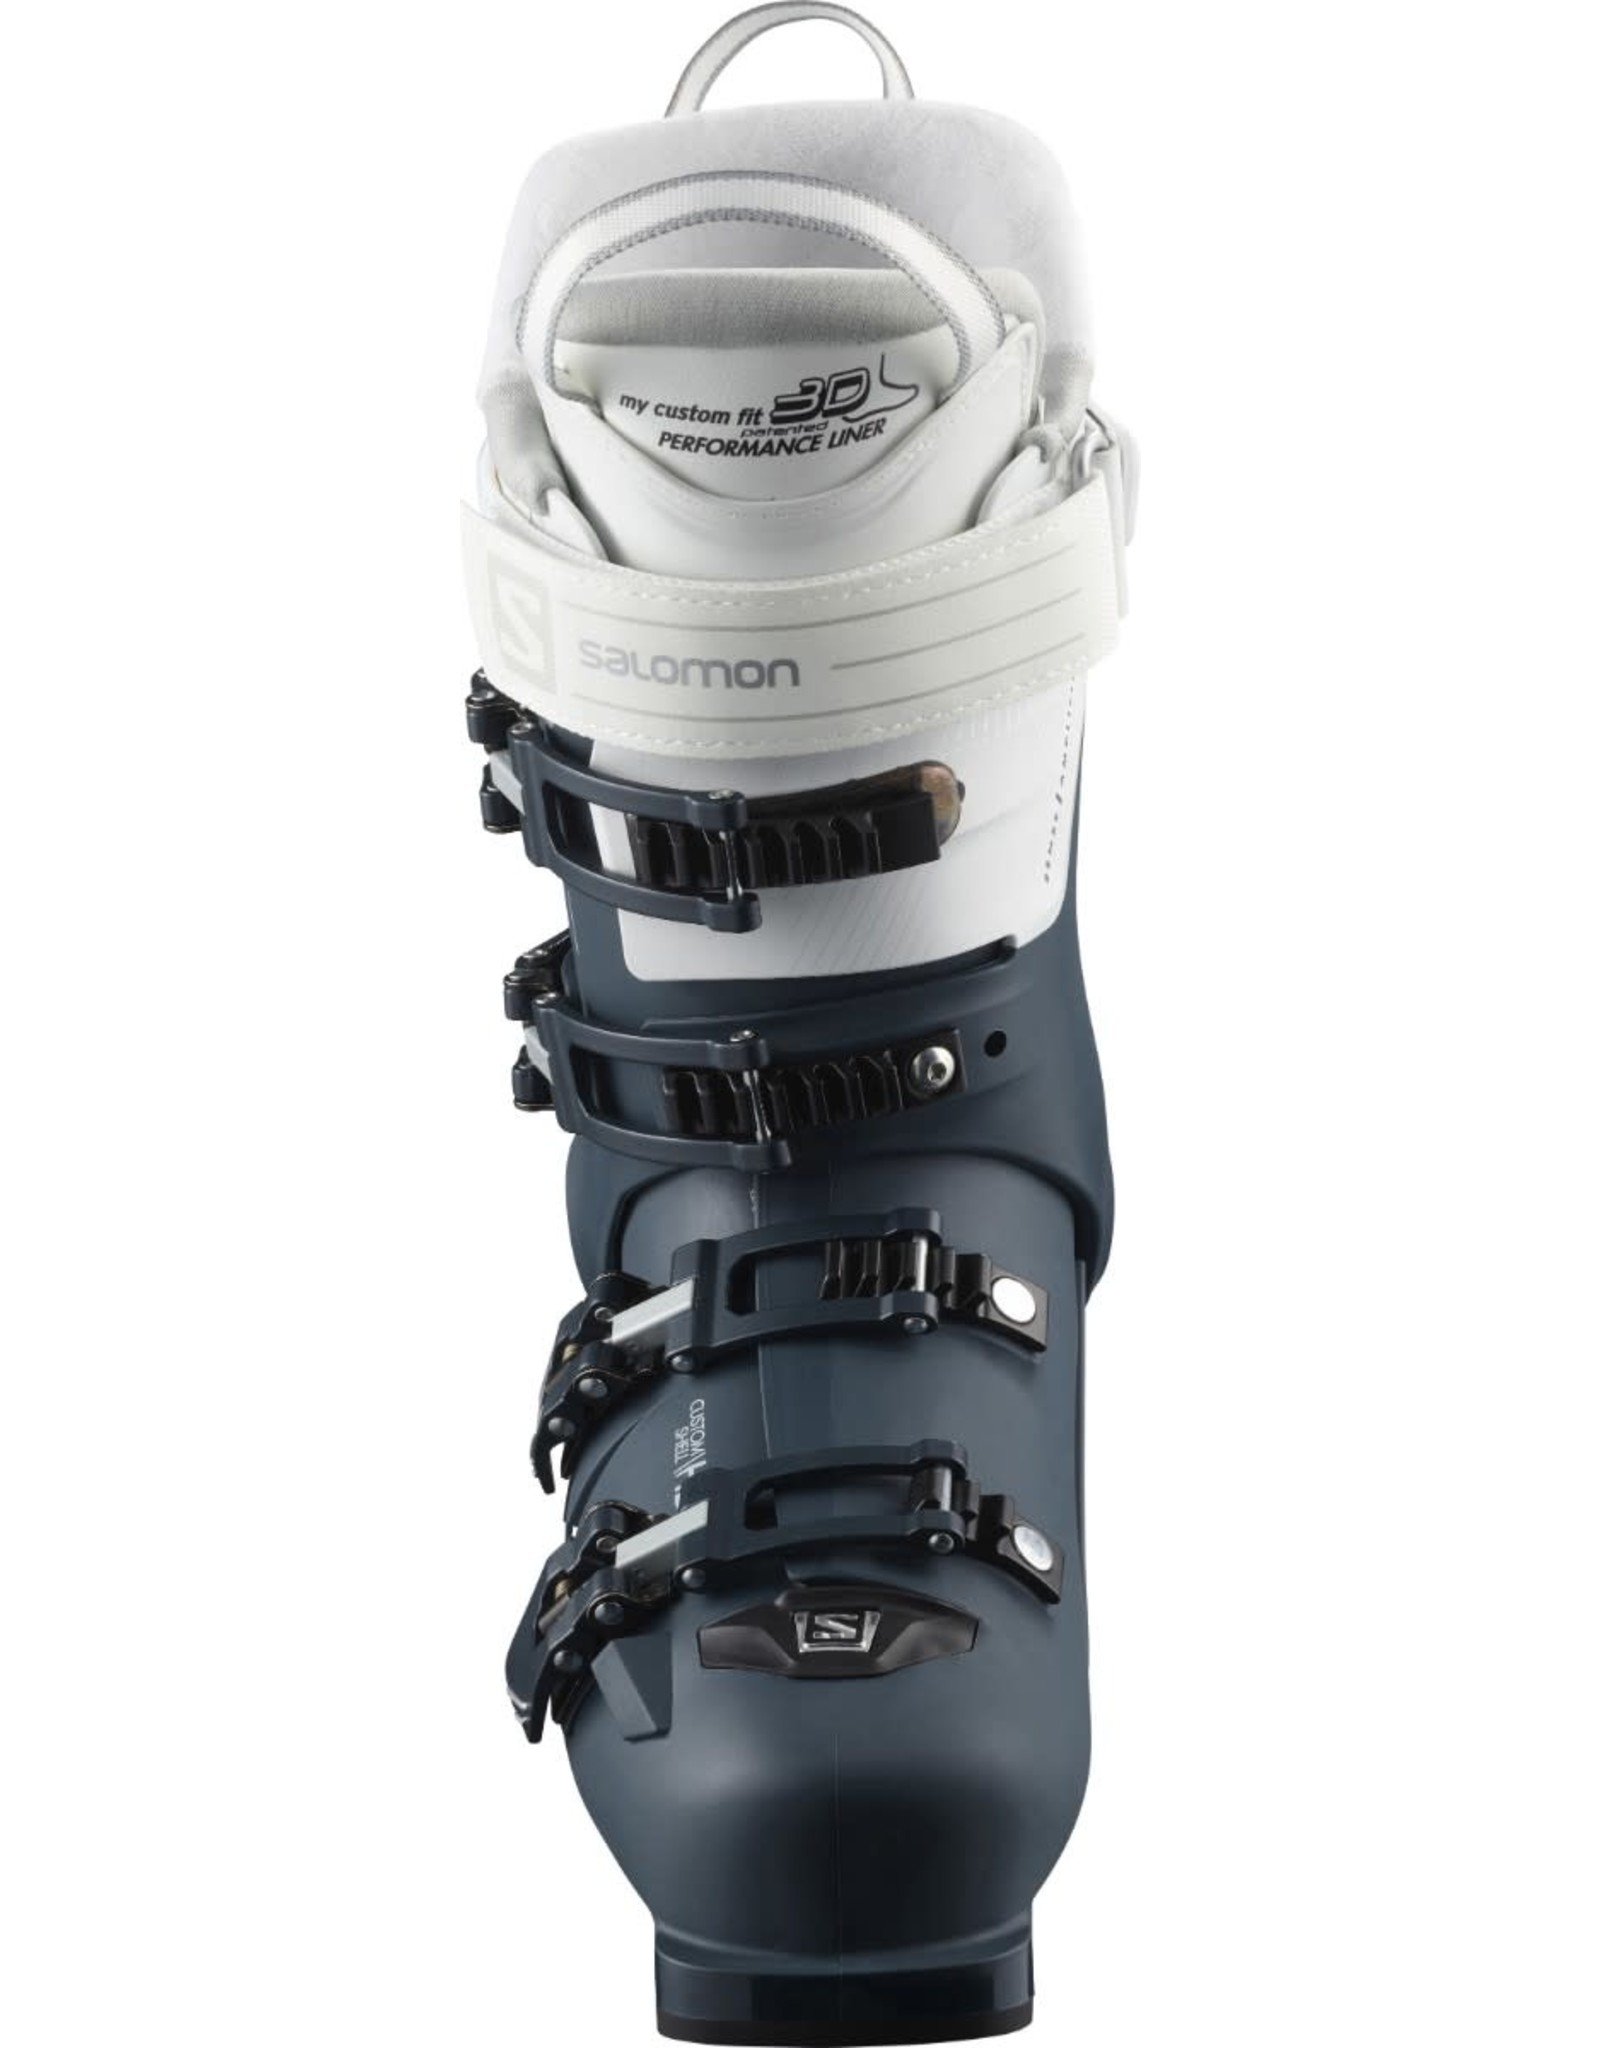 SALOMON SALOMON BOTTE ALPIN S/MAX 90 W SR 20 24.5